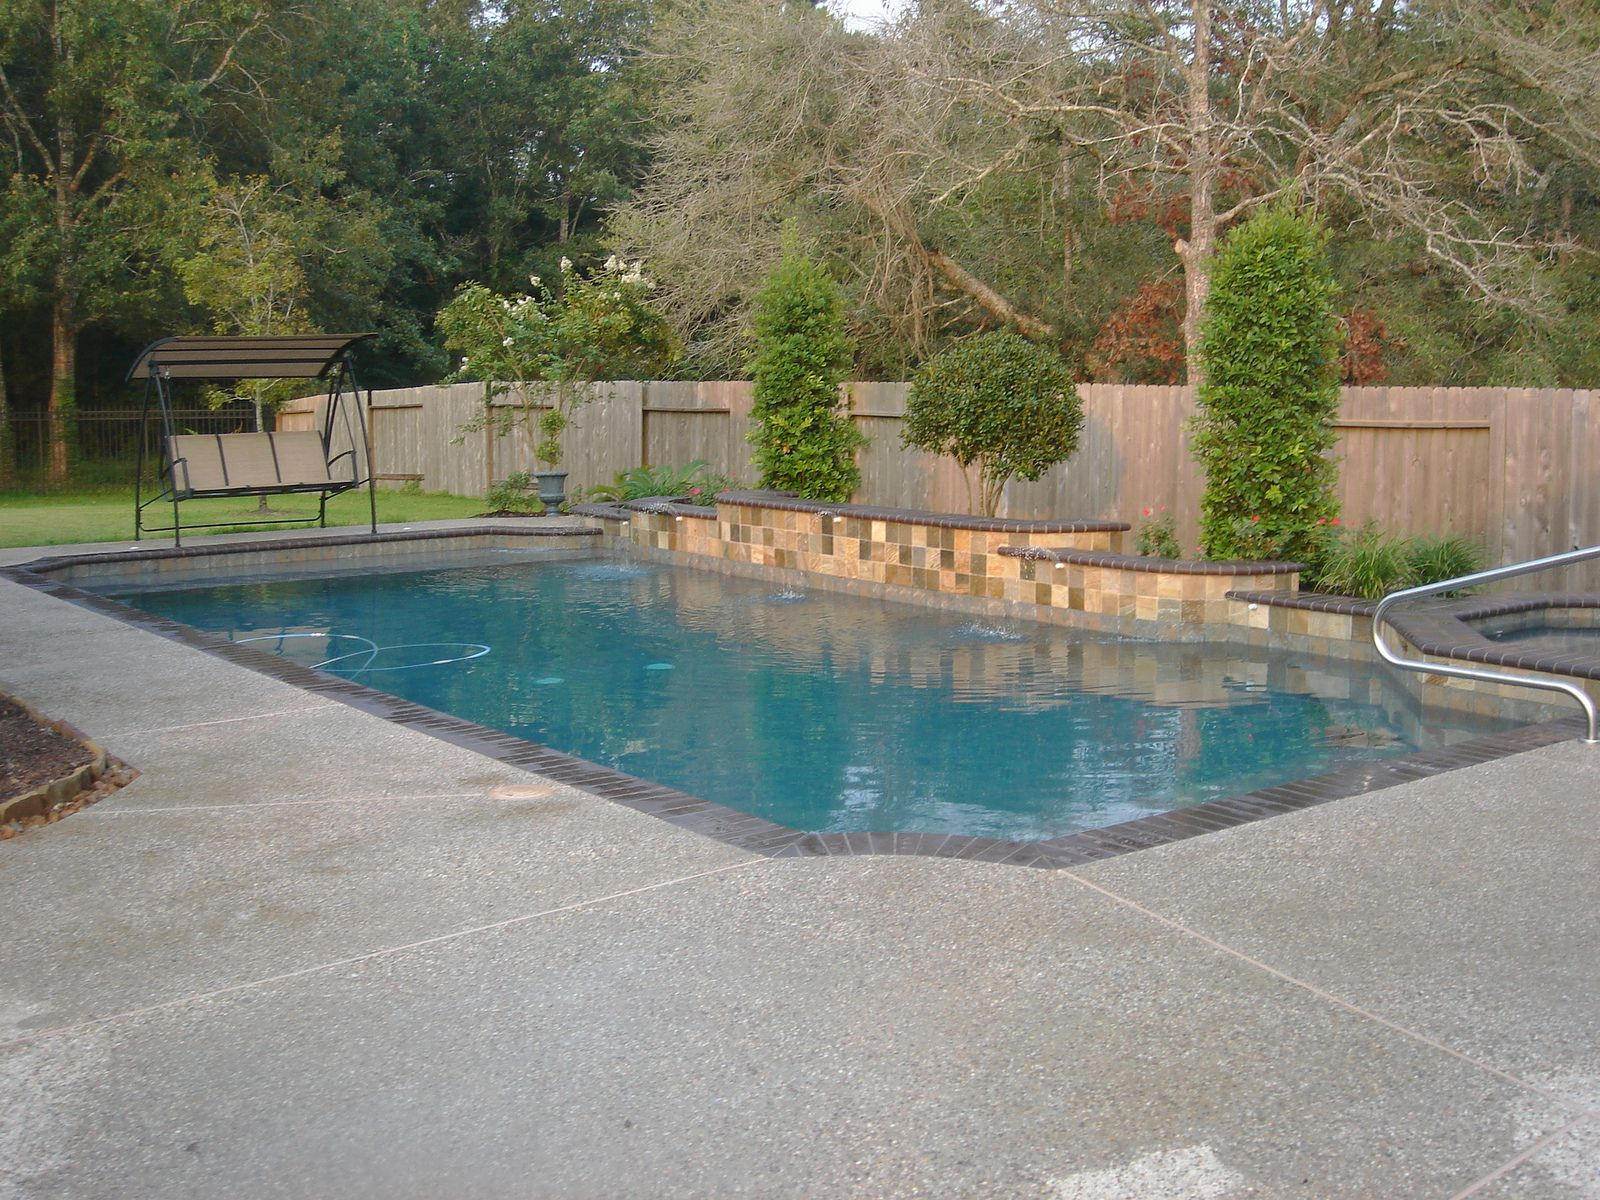 Simple Pool Ideas backyard landscaping ideas swimming pool design Simple Pool Ideas Find This Pin And More On Pool Ideas Simple Pool Designs Google Search